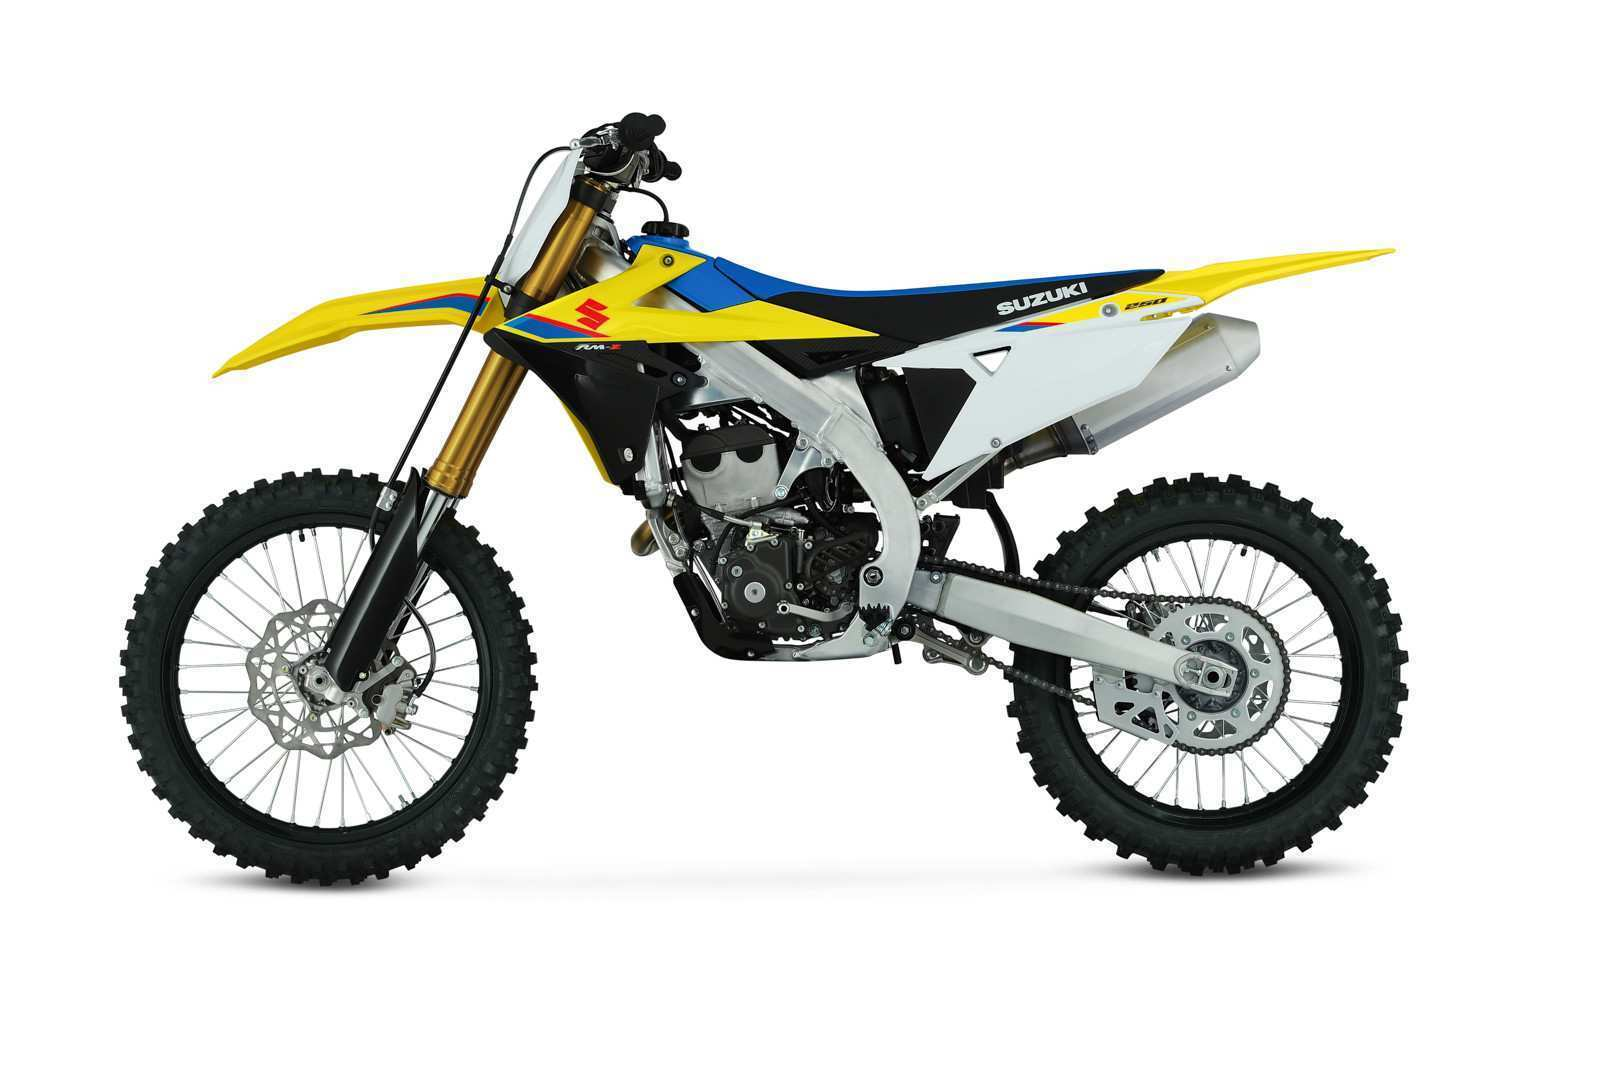 86 Gallery of 2019 Suzuki Rmx450Z Exterior and Interior for 2019 Suzuki Rmx450Z